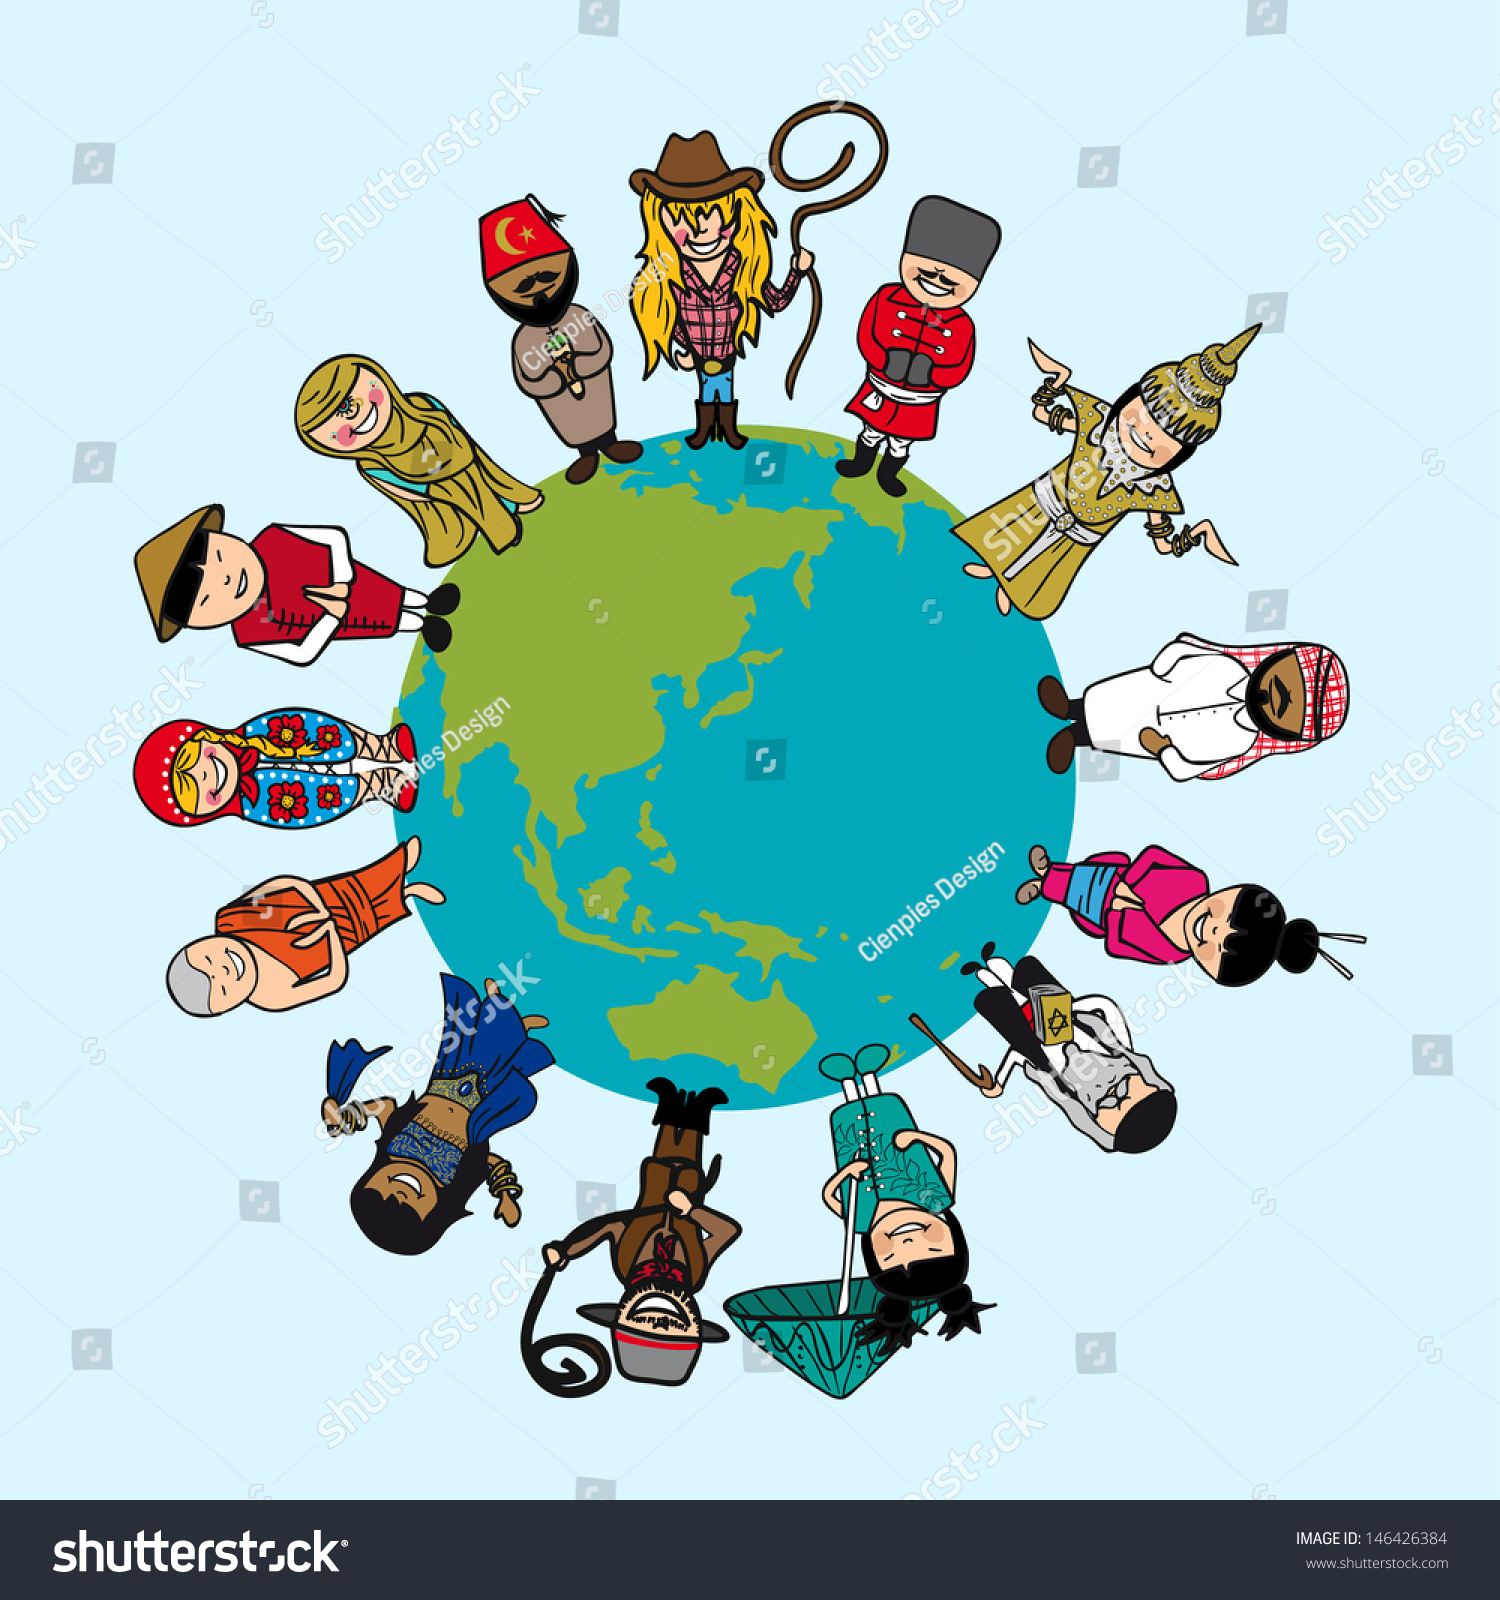 Global Cartoon People Distinctive Outfit Vector Stock